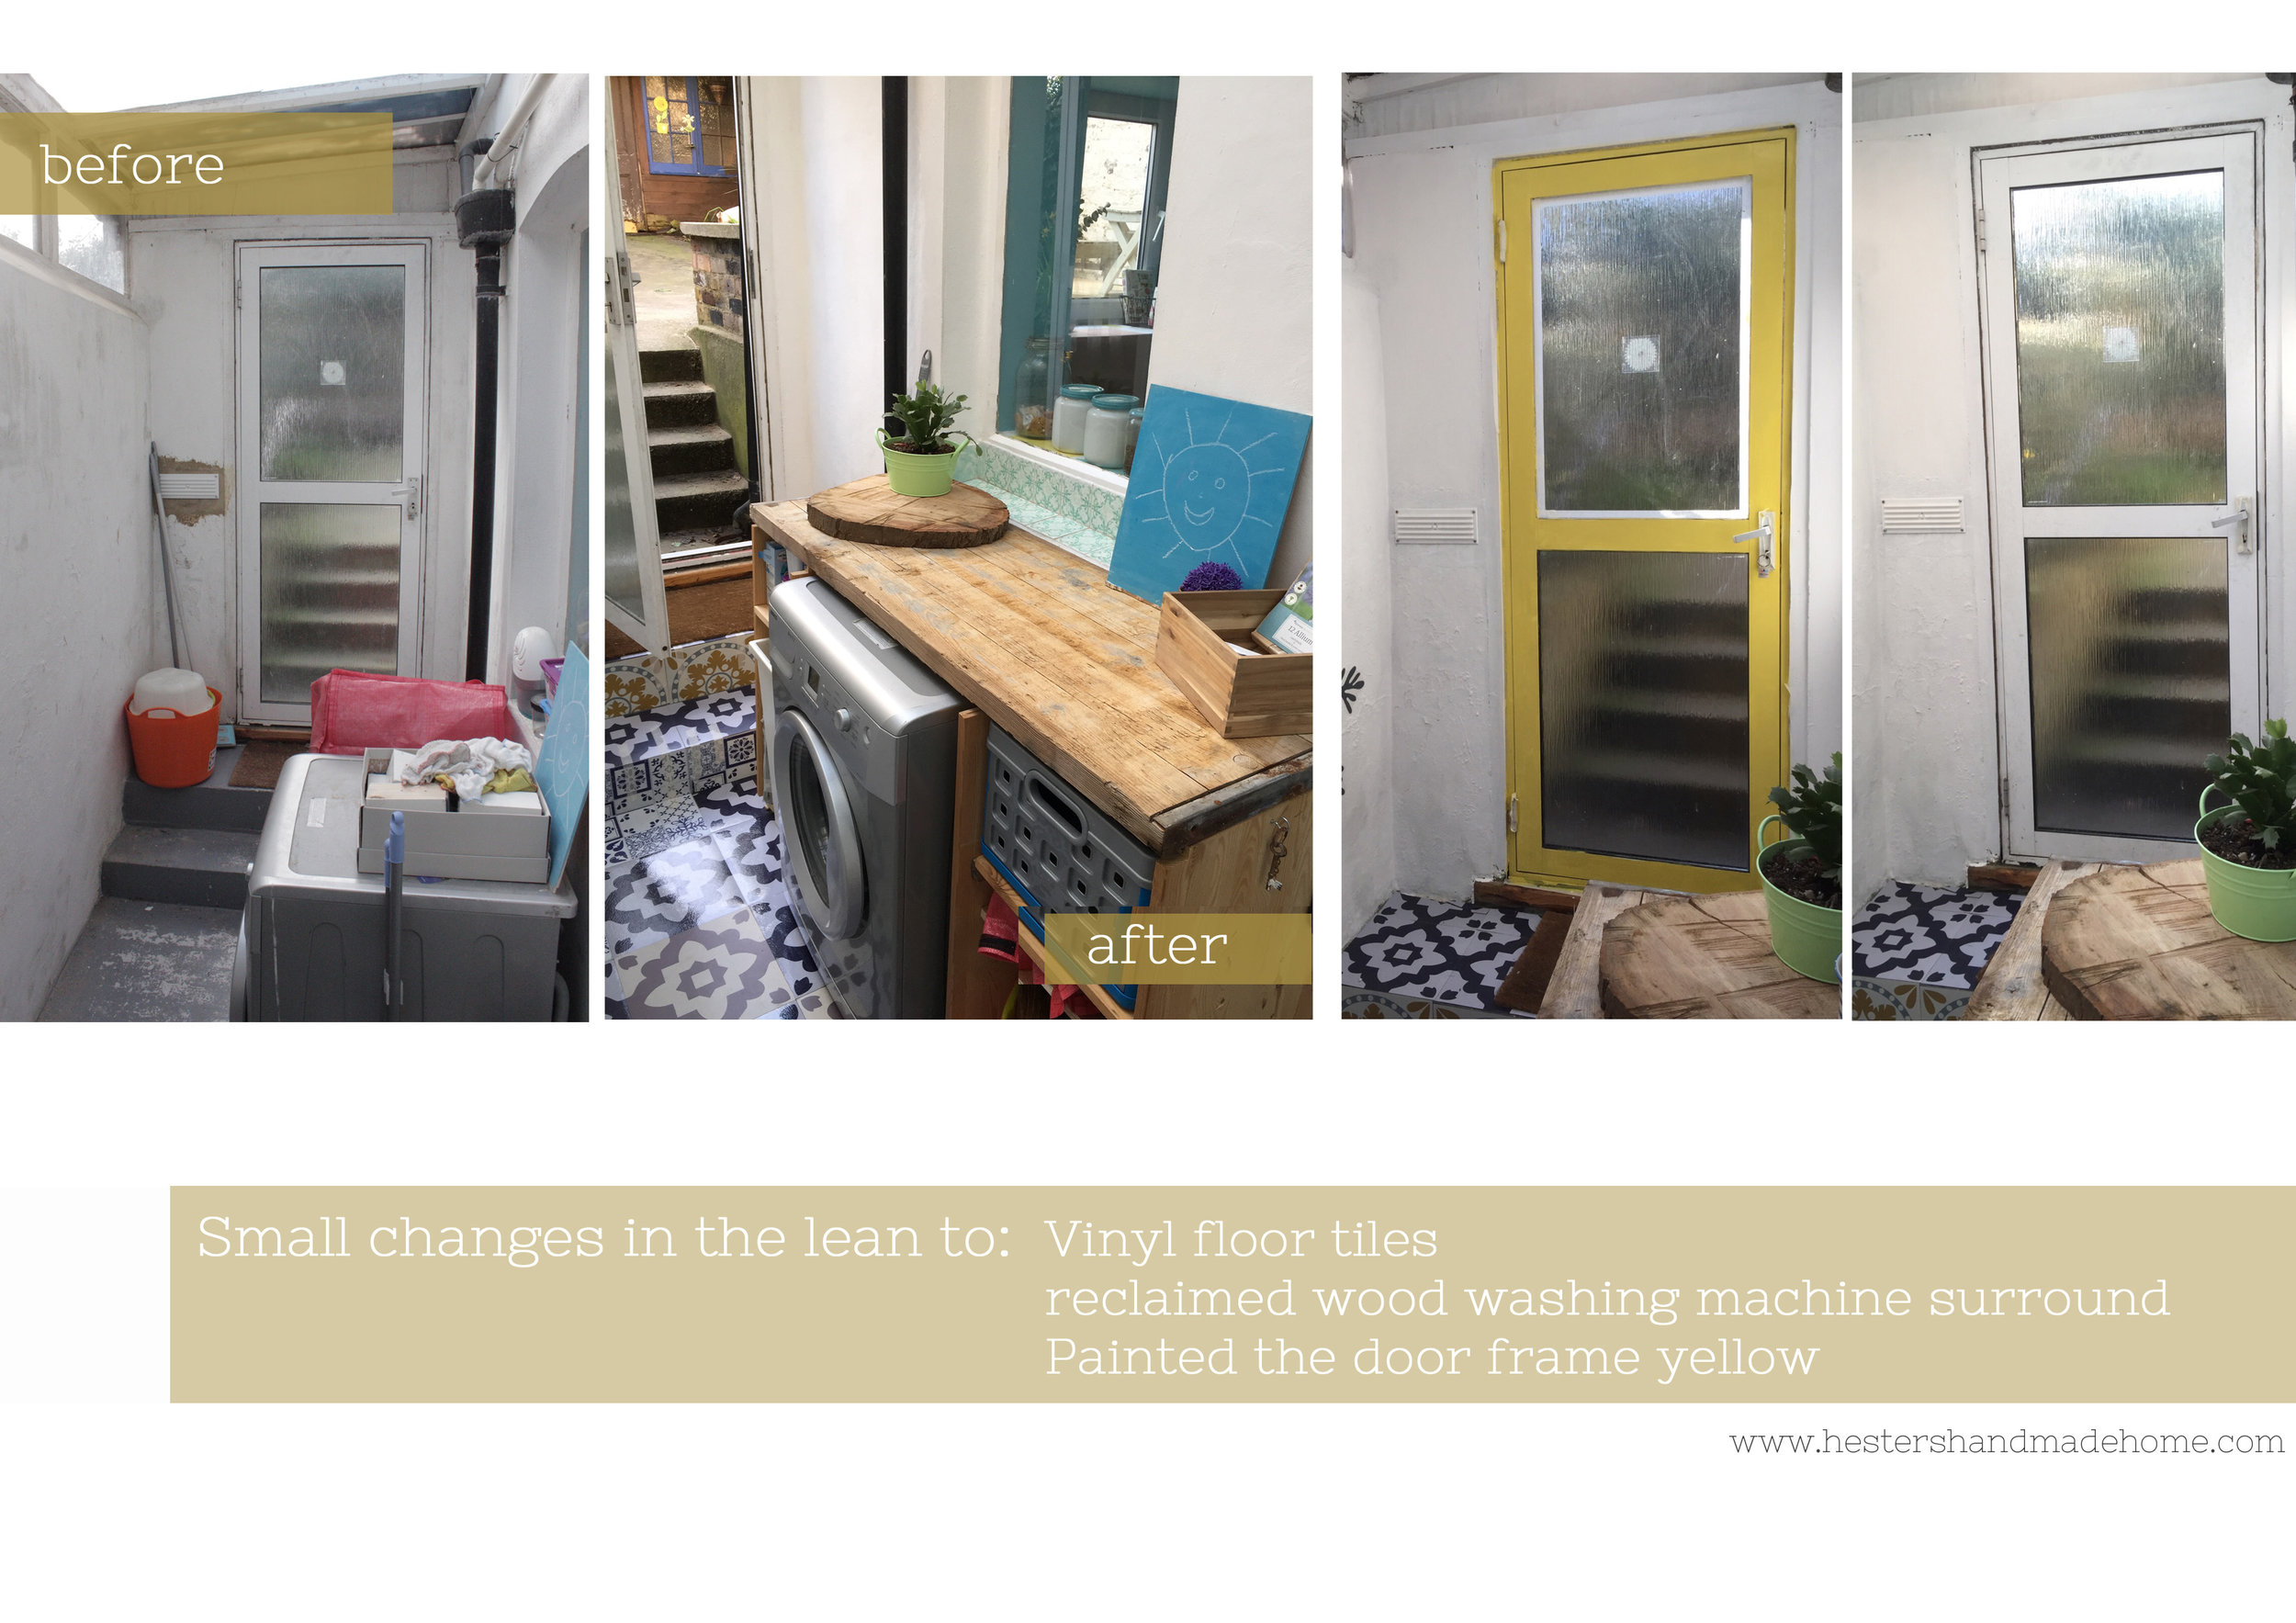 Lean to makeover by www.hestershandamdehome.com